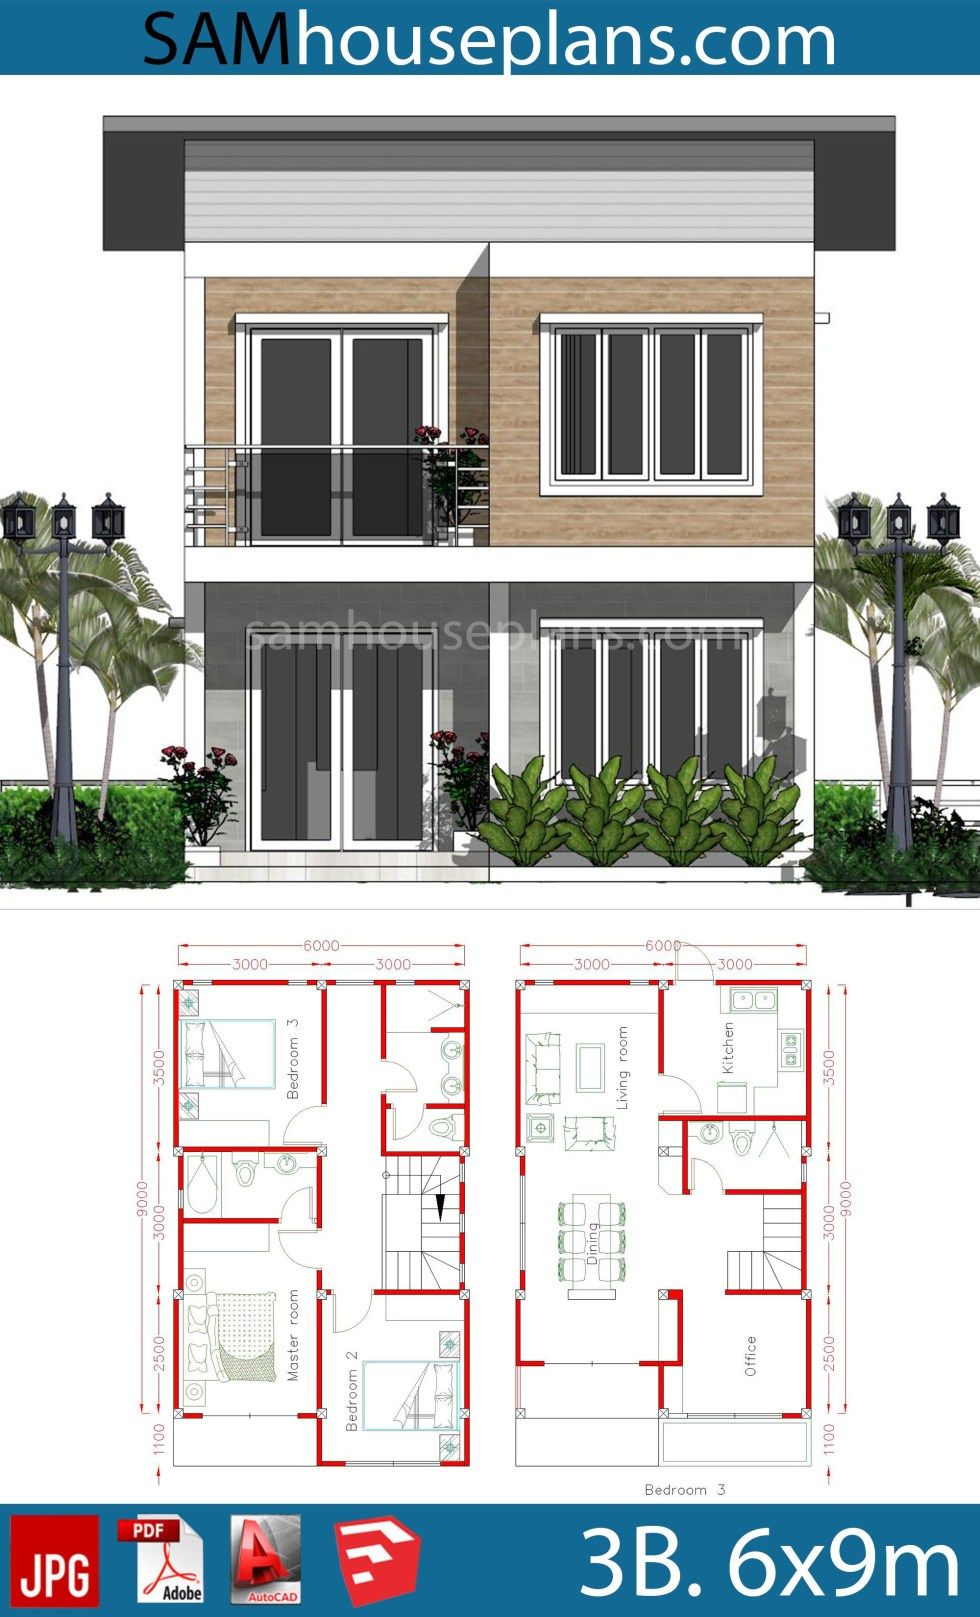 House Plans 6x9m With 3 Bedrooms Sam House Plans Model House Plan House Construction Plan Architectural House Plans